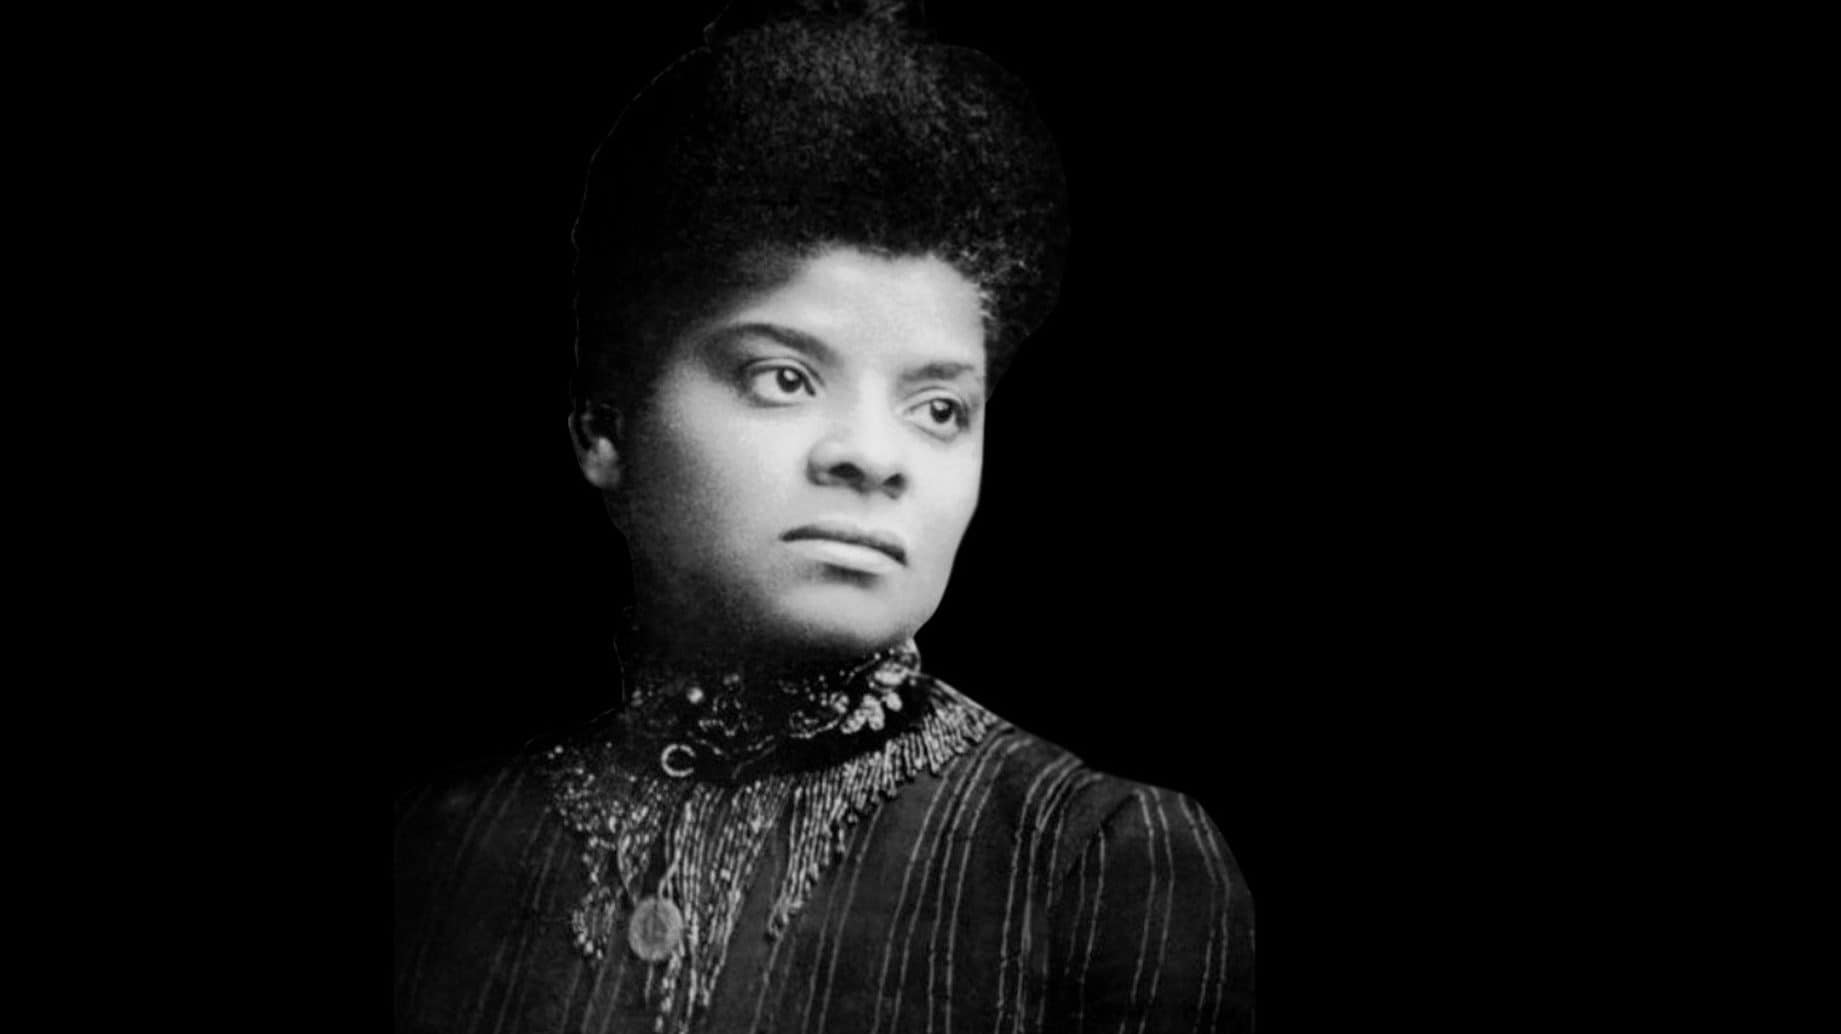 Pulitzer Prize awarded to Ida B. Wells and NYT's 1619 Project ...